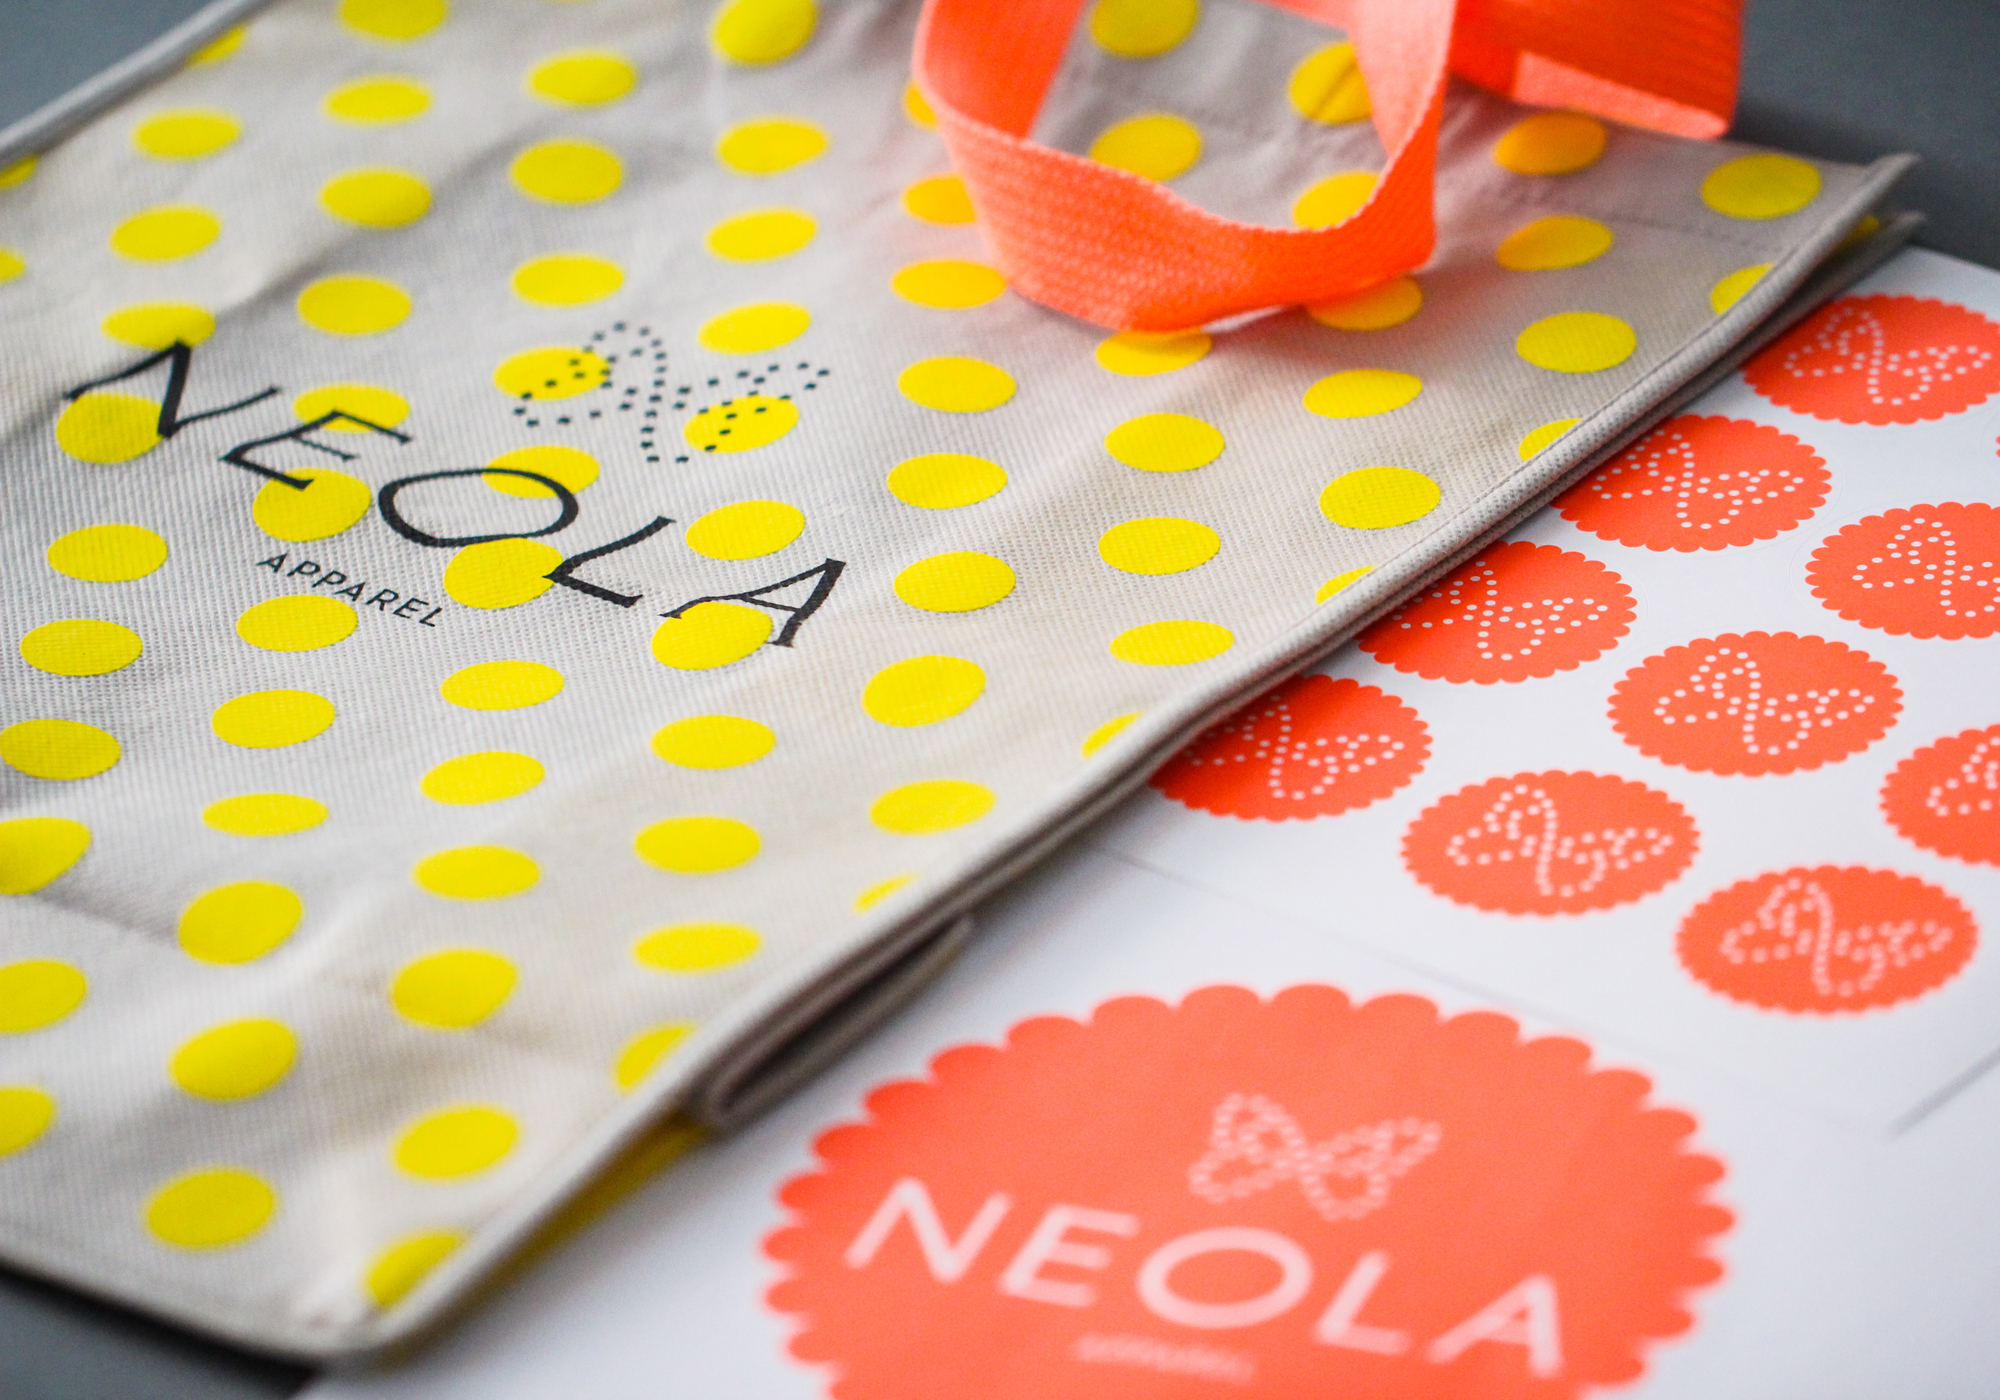 Cover image: Neola (2013)